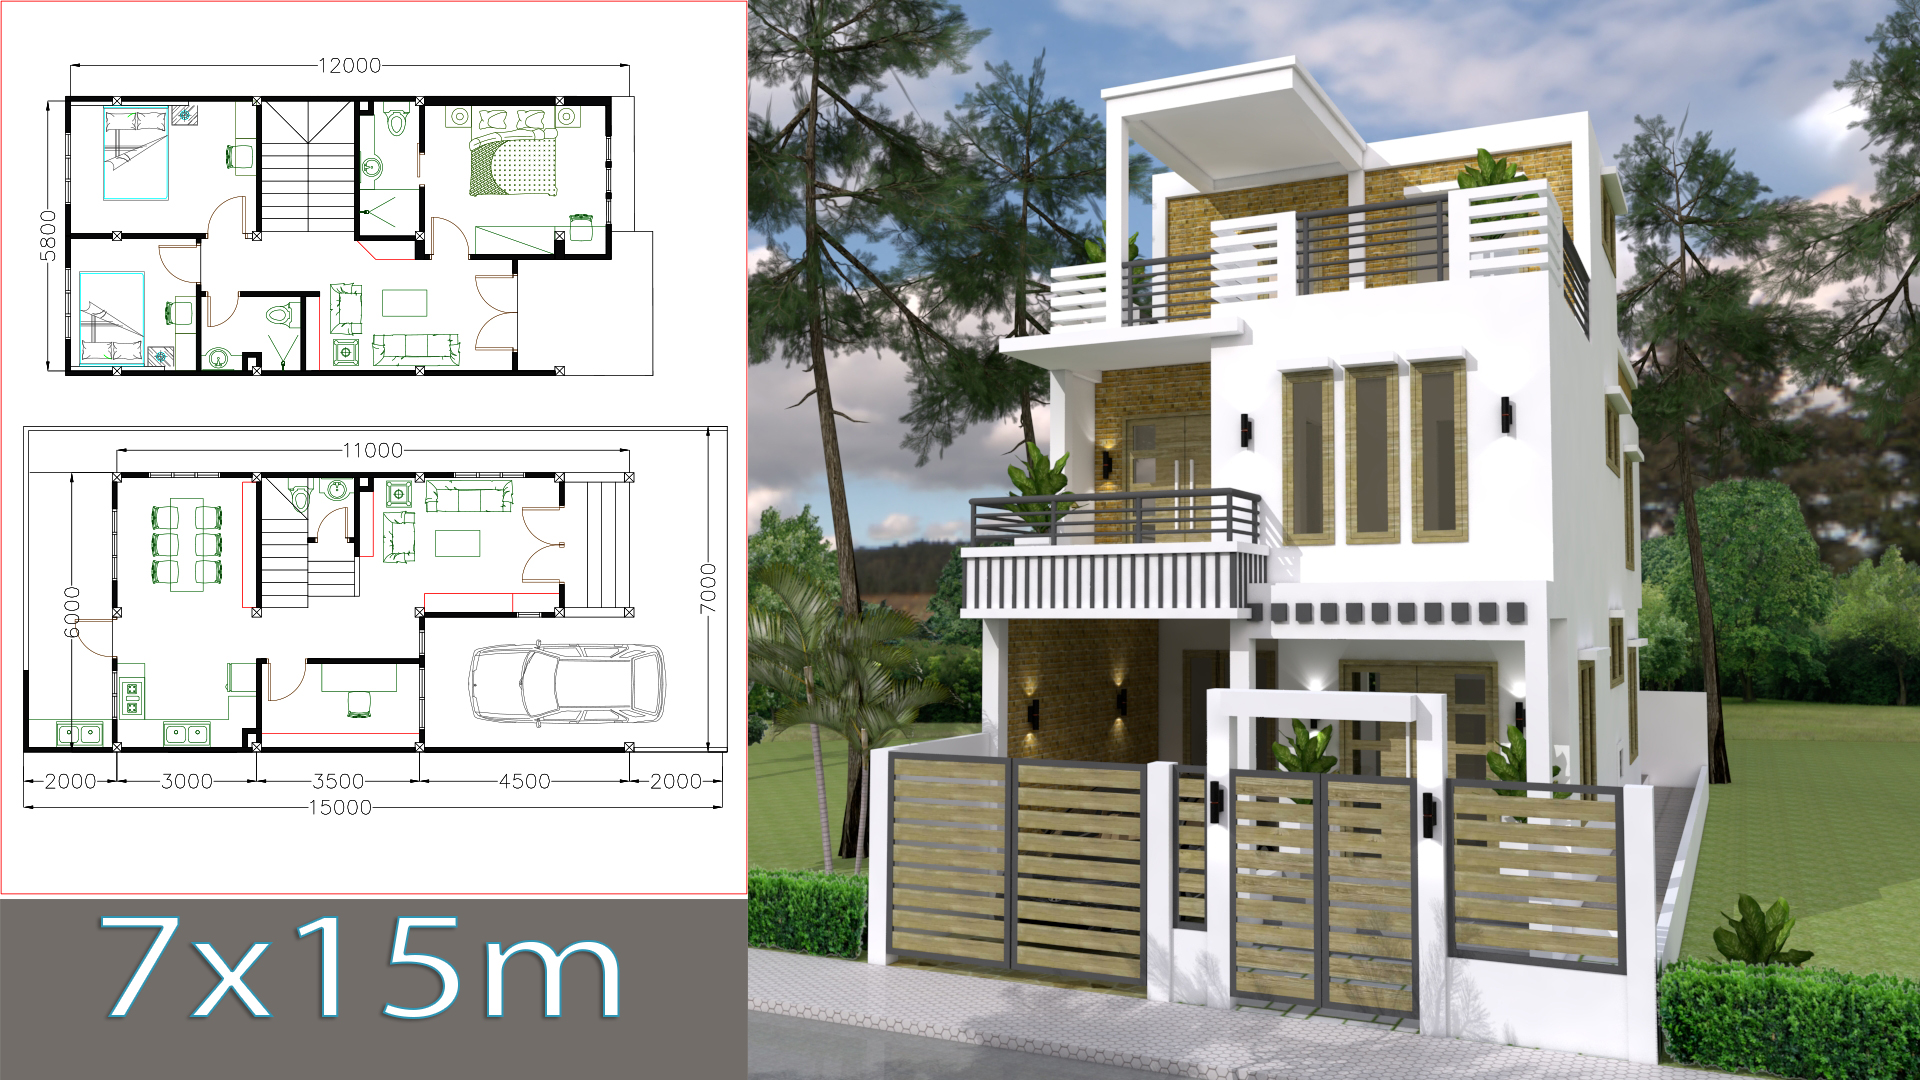 SketchUp Home Design Plan 7x15m with 3 Bedrooms - Samphoas.Com